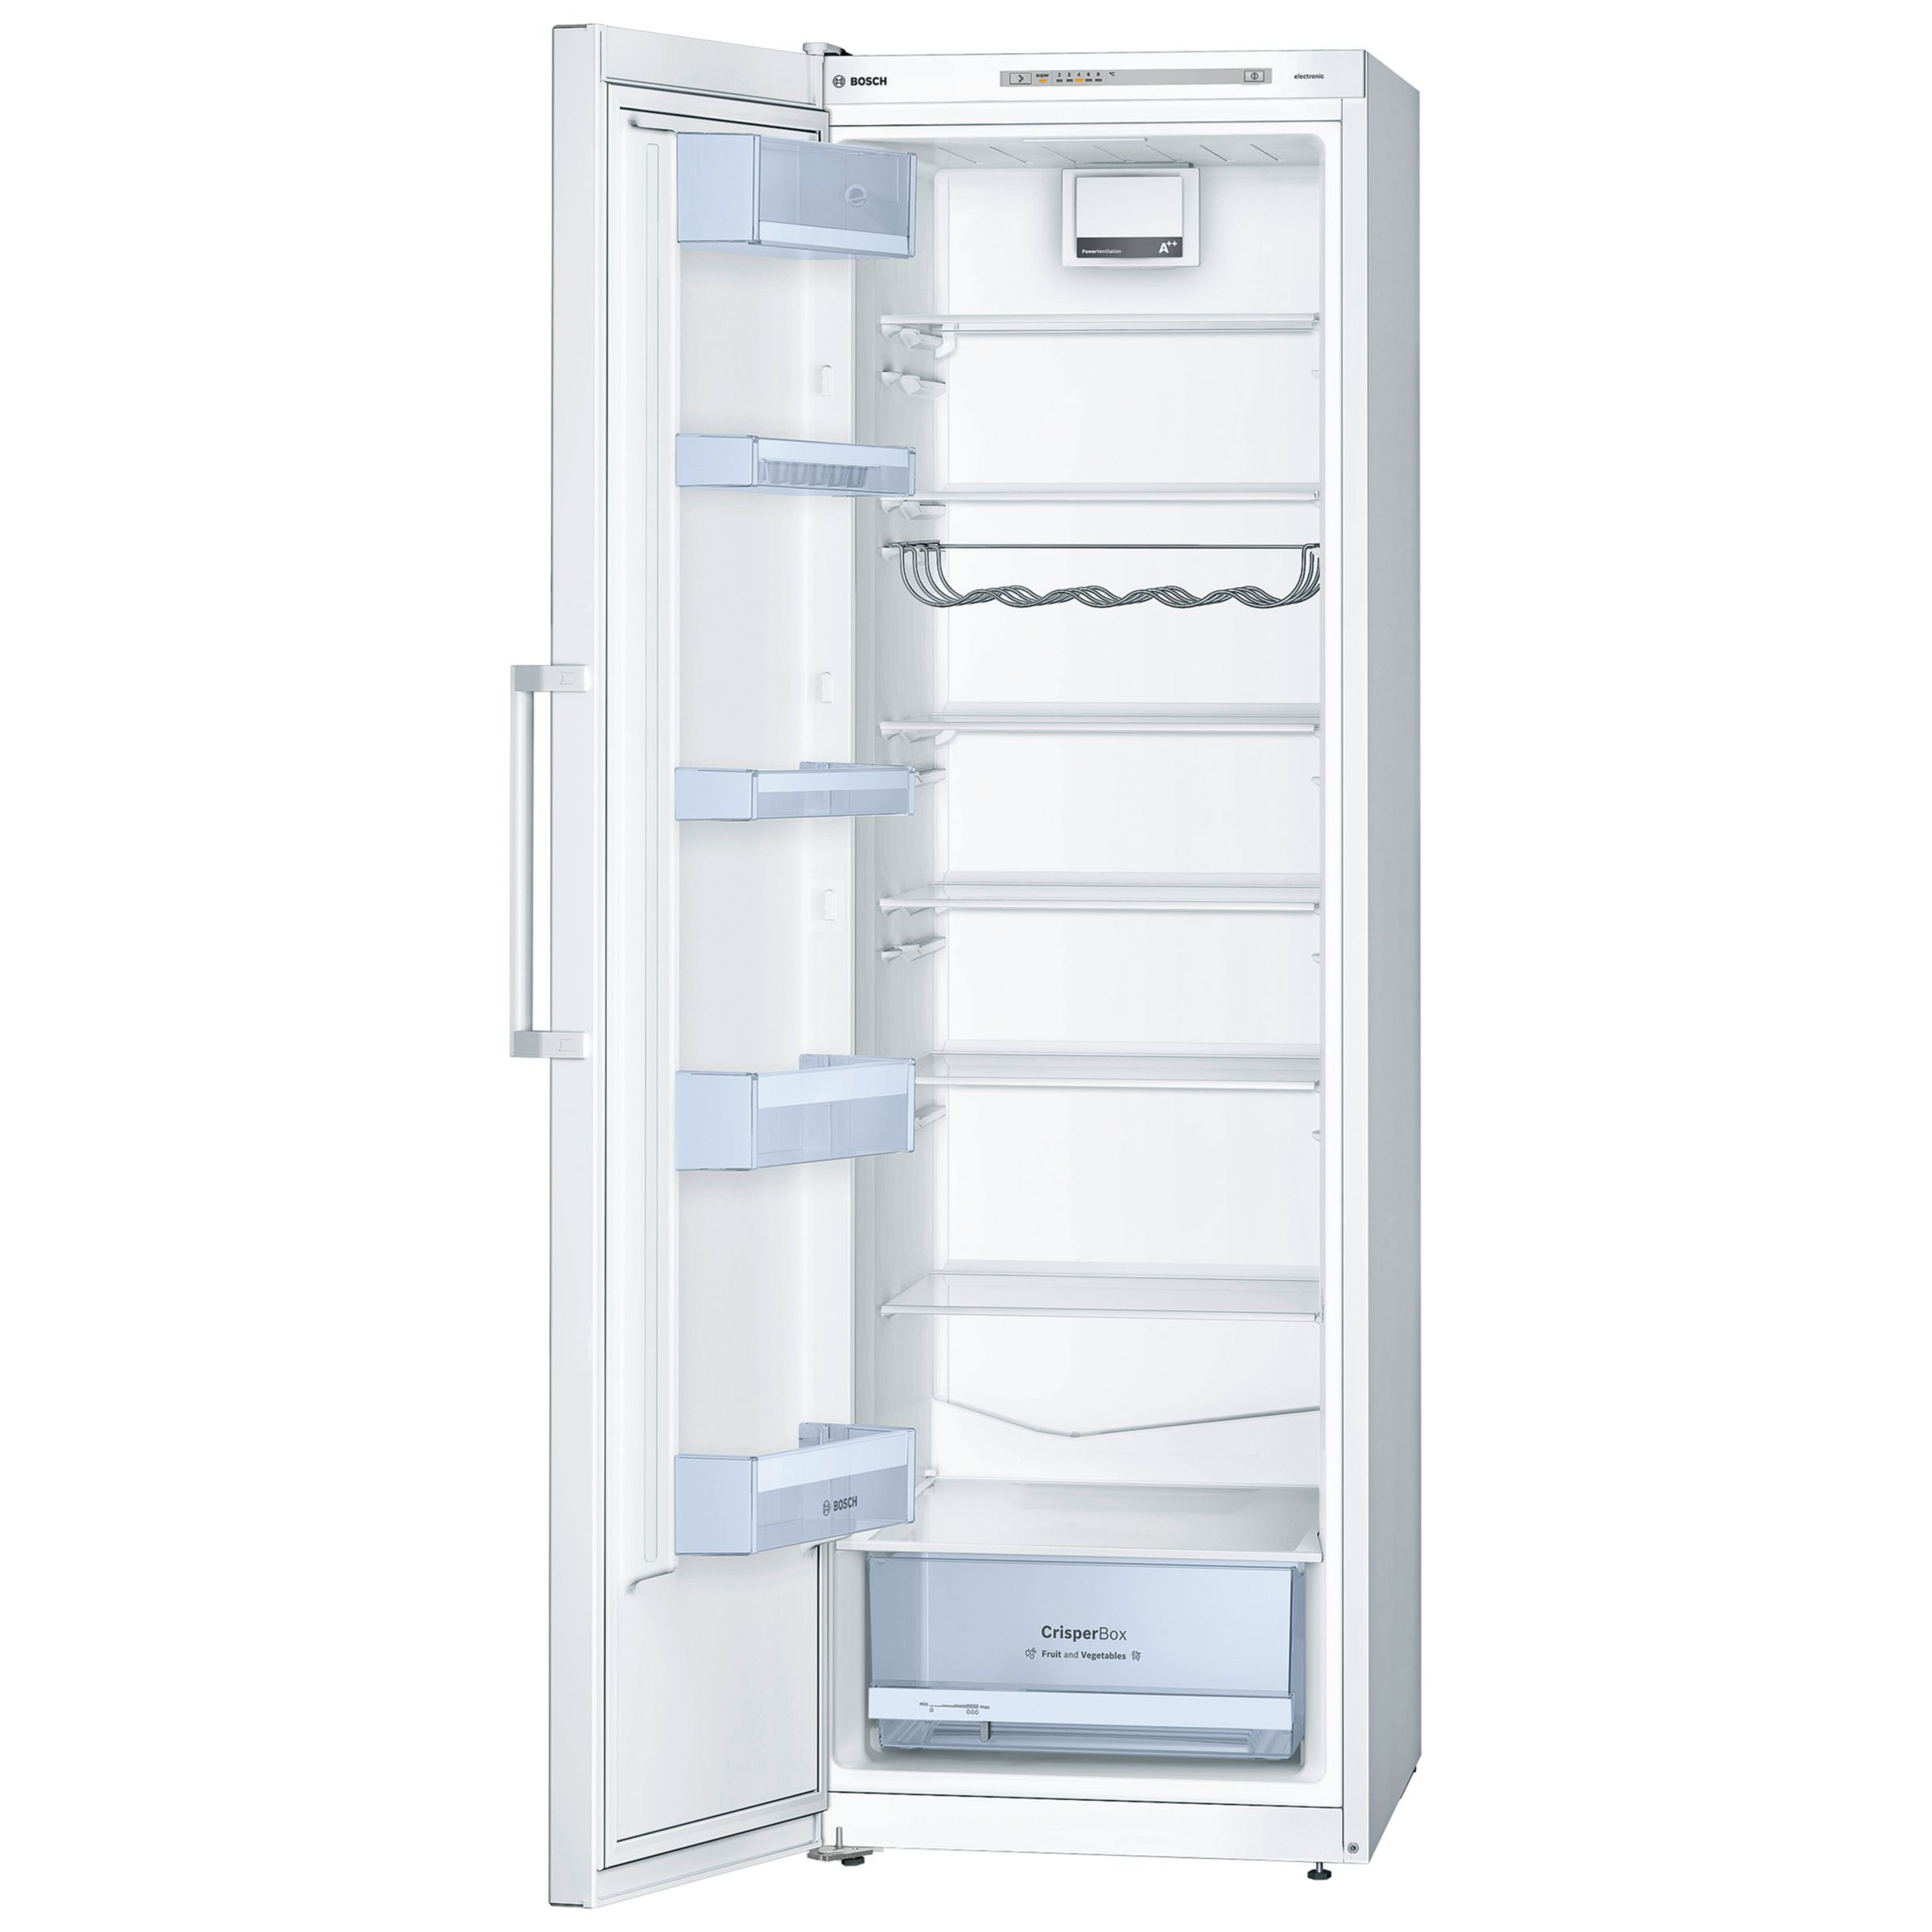 Bosch KSV36VW30G Tall Larder Fridge, A++ Energy Rating, 60cm Wide, White